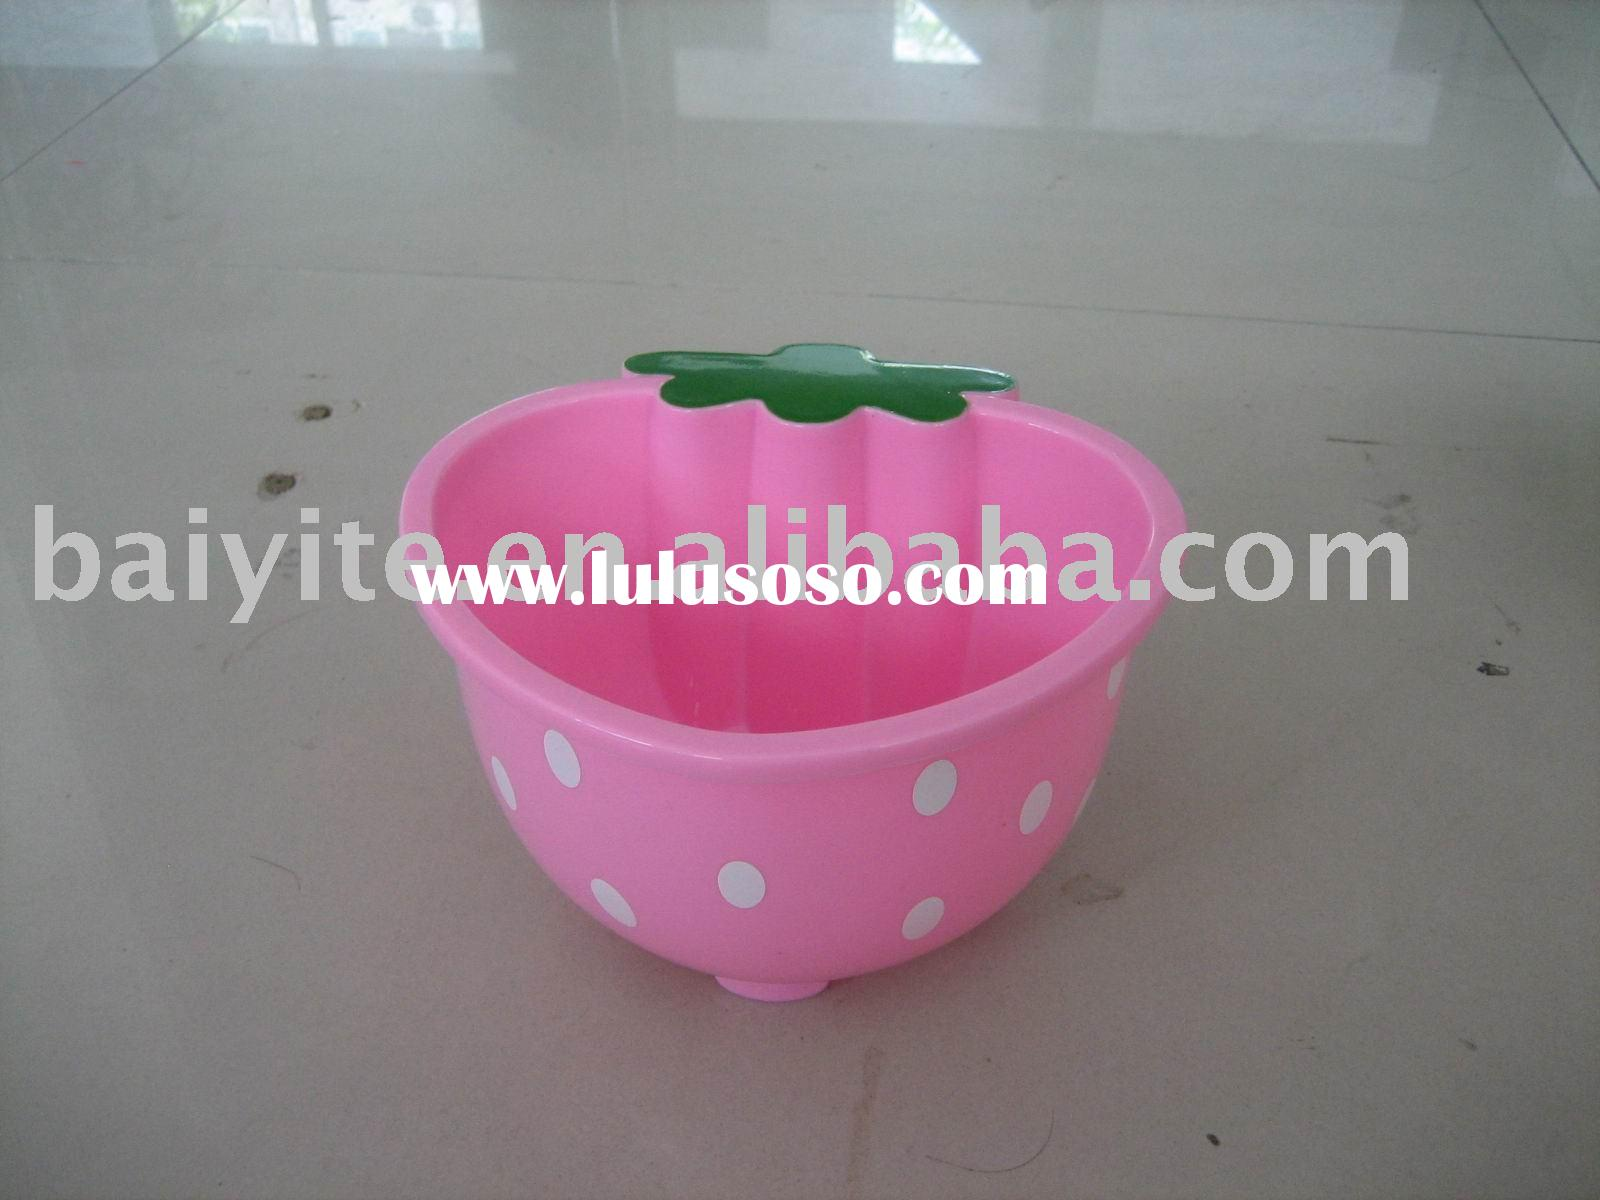 strawberry sink strainer,platic container